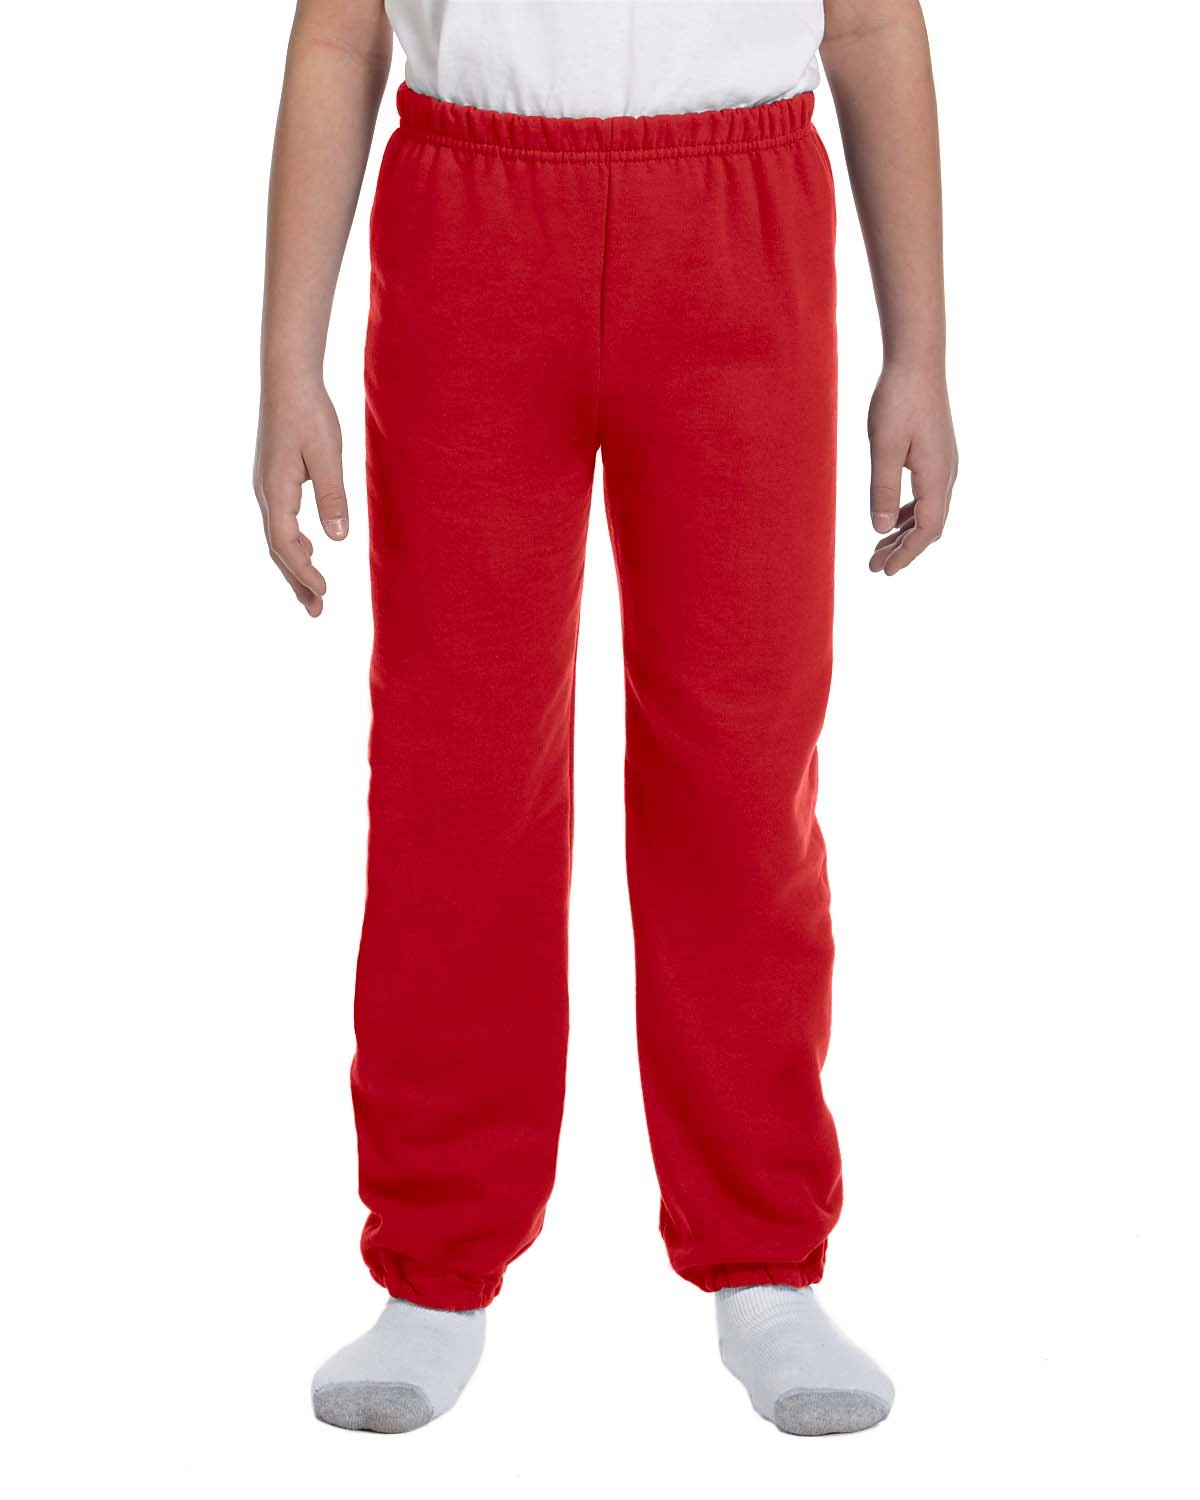 Gildan Boys 7.75 oz. Heavy Blend? 50/50 Sweatpants (G182B) -RED -XL-12PK